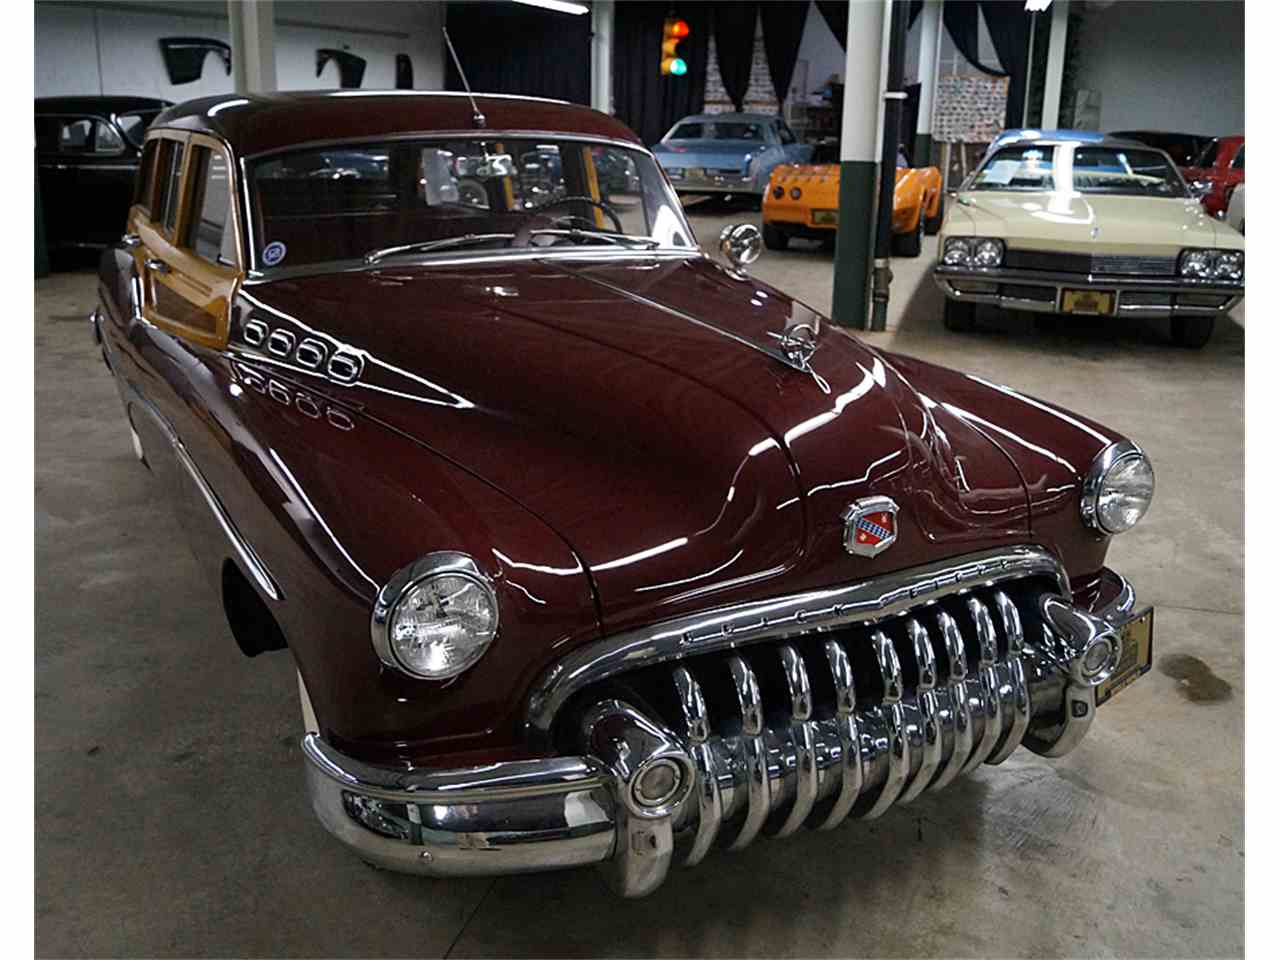 1950 Buick Roadmaster for Sale | ClassicCars.com | CC-10870161950s Cars For Sale Cheap